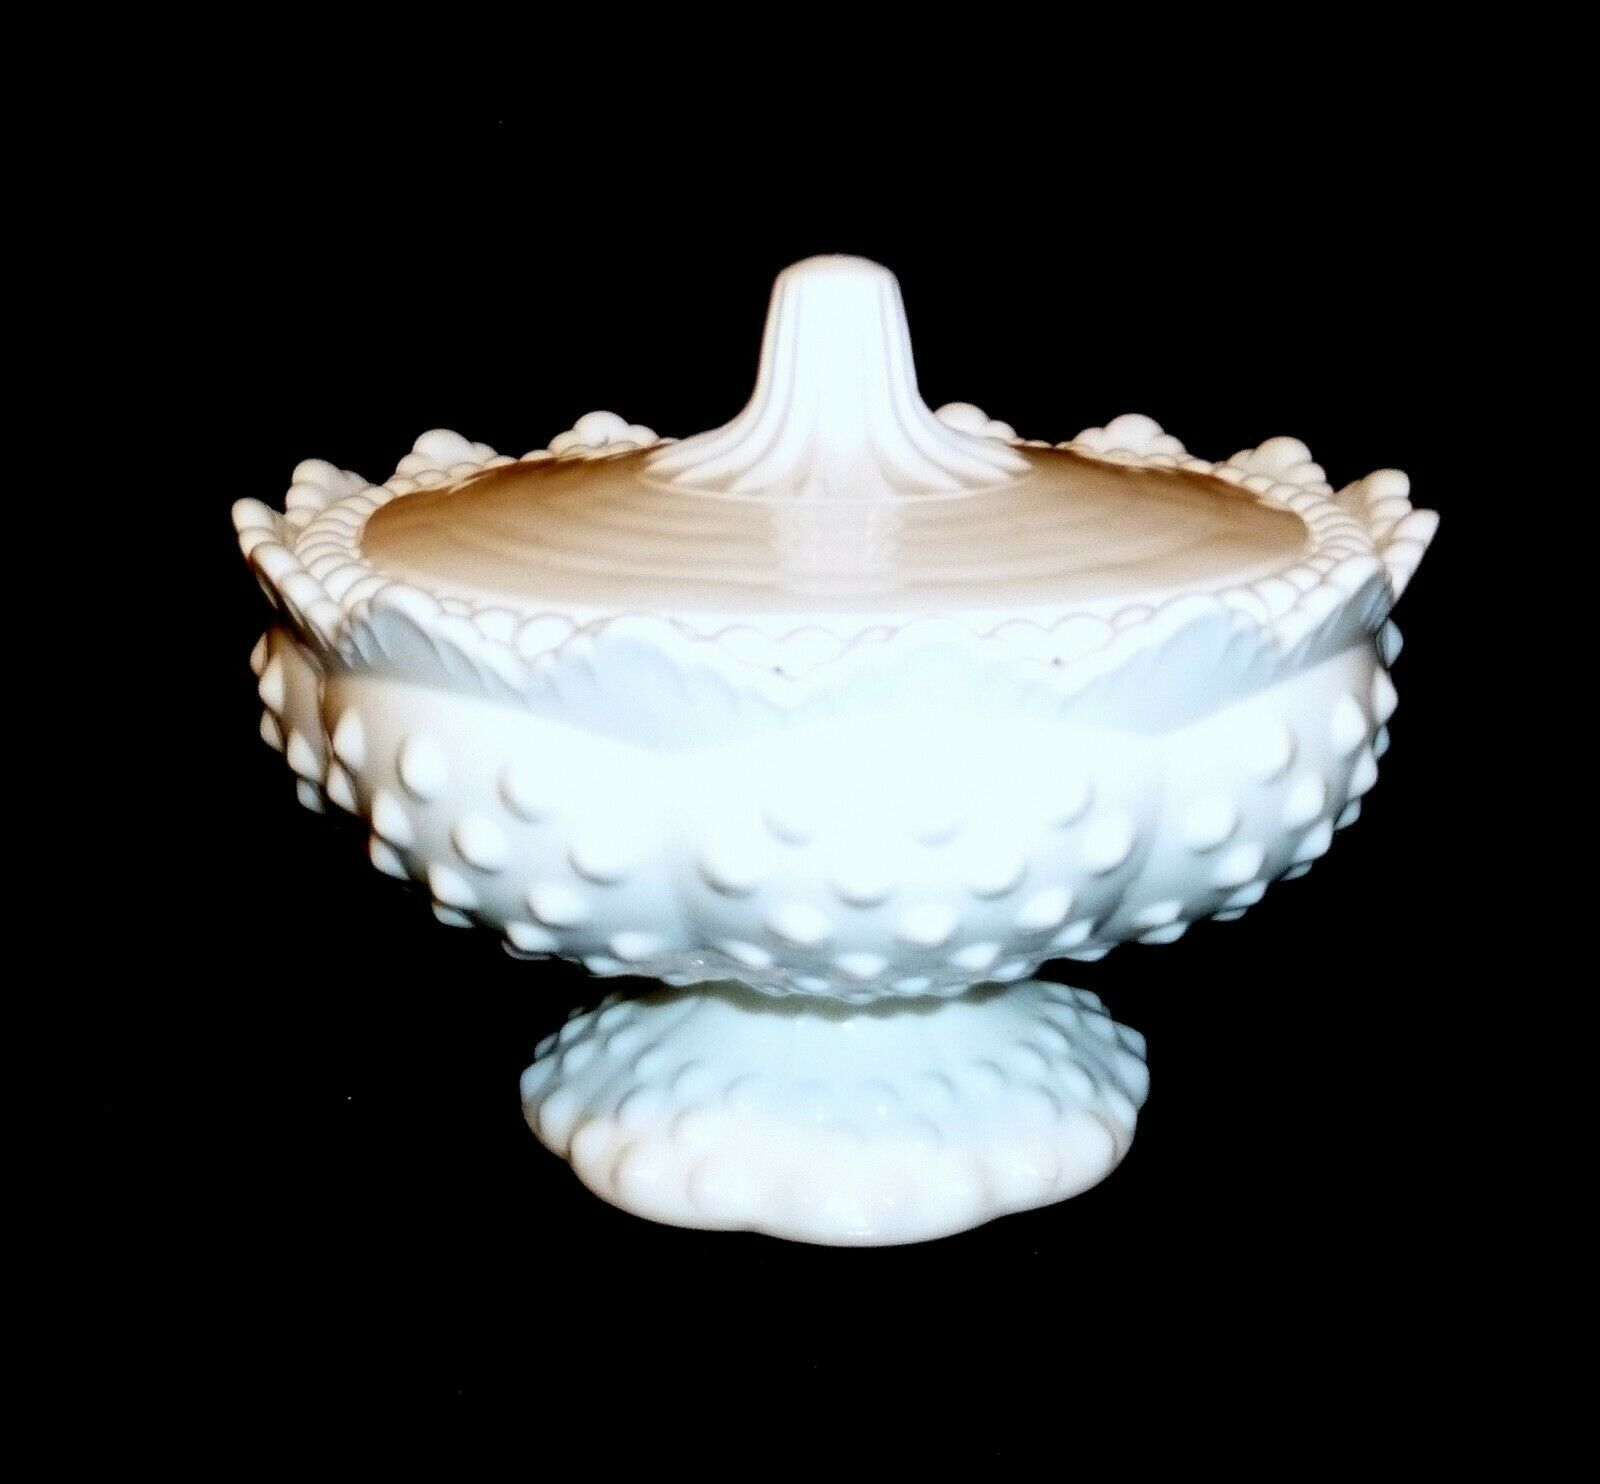 Primary image for FENTON Hobnail w LID White Milk Glass Advent Candle Holder Centerpiece 4 3/4""